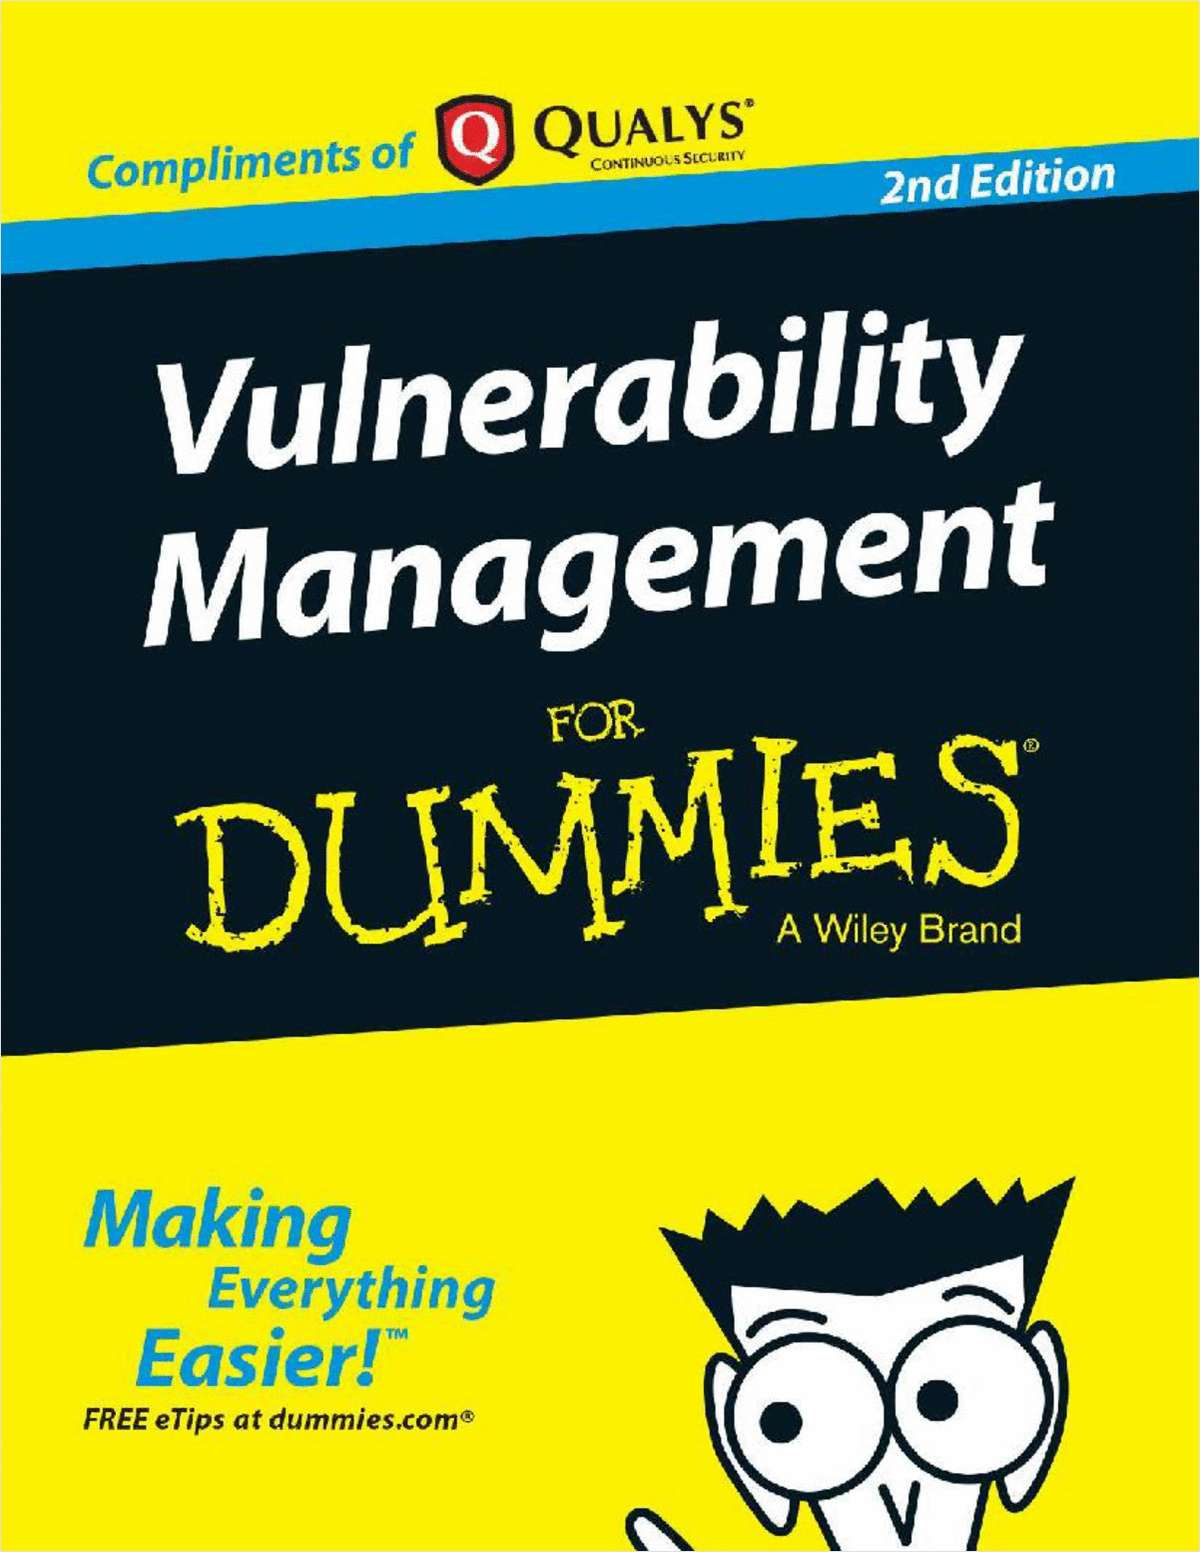 Vulnerability Management for Dummies, 2nd Edition